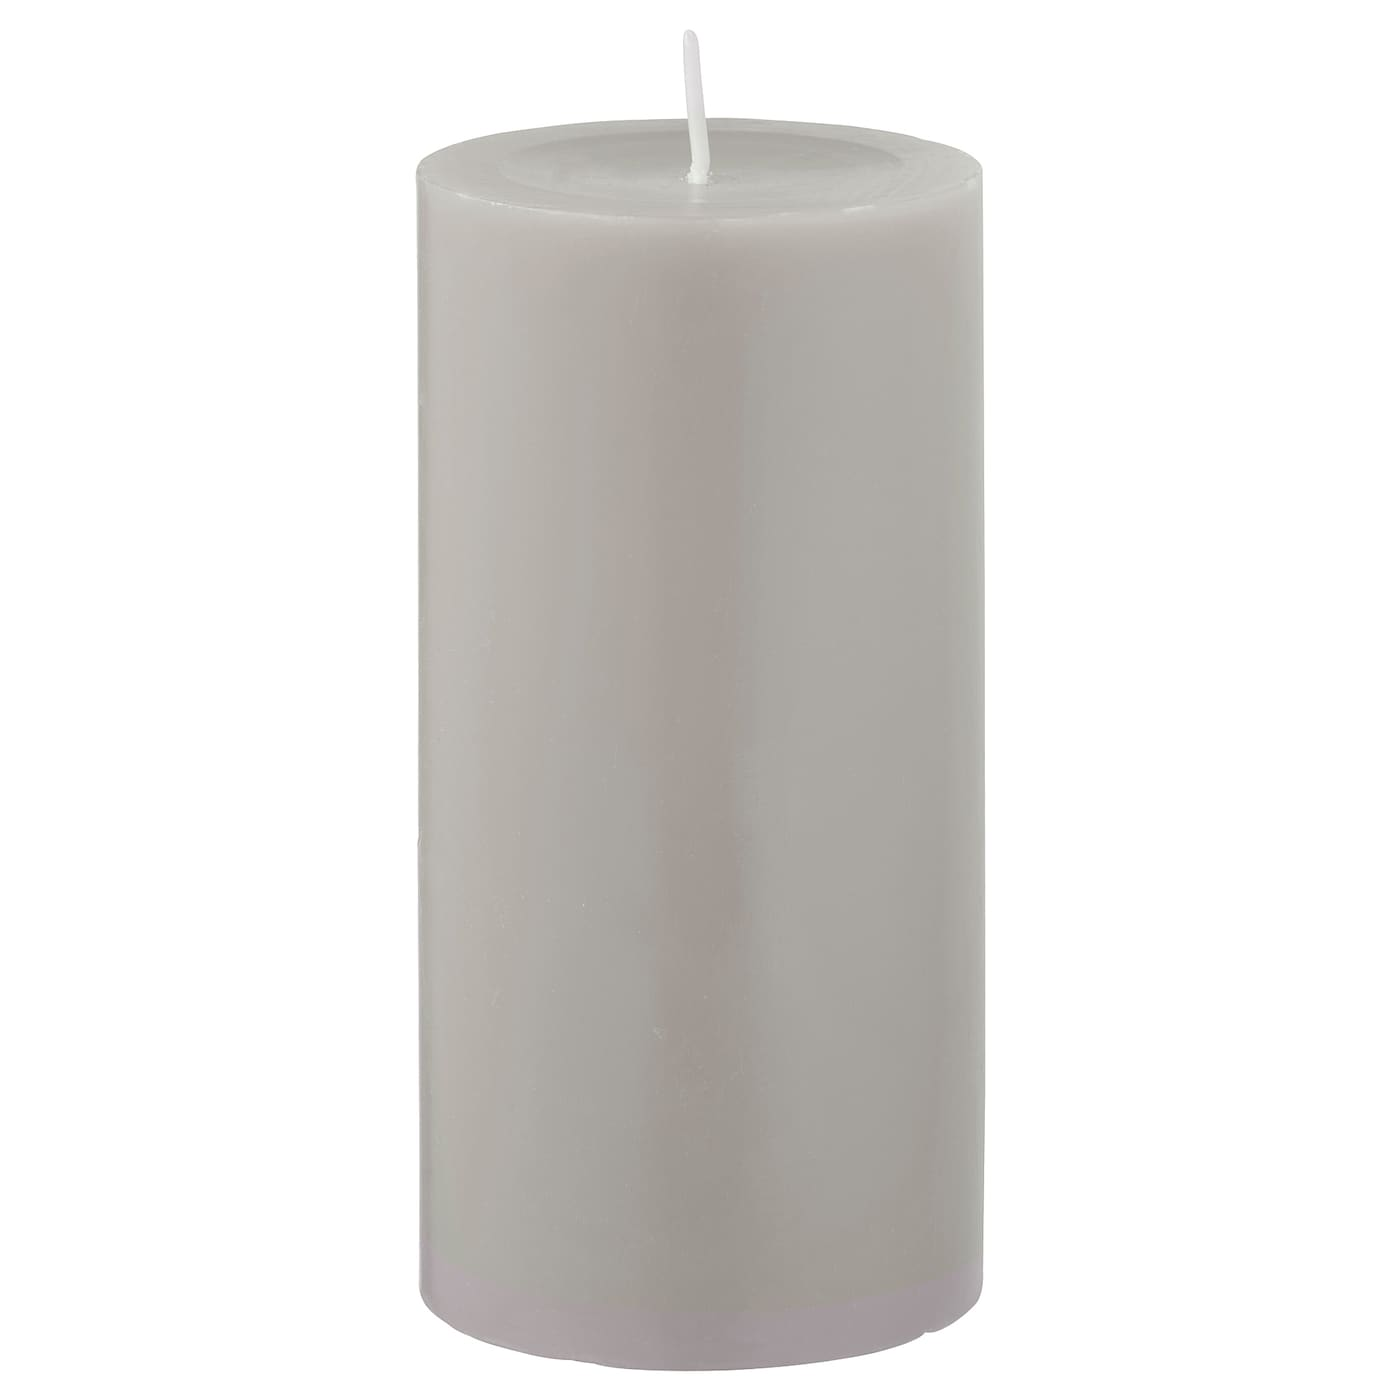 IKEA SINNLIG scented block candle Spicy scent of nutmeg, cinnamon and vanilla.